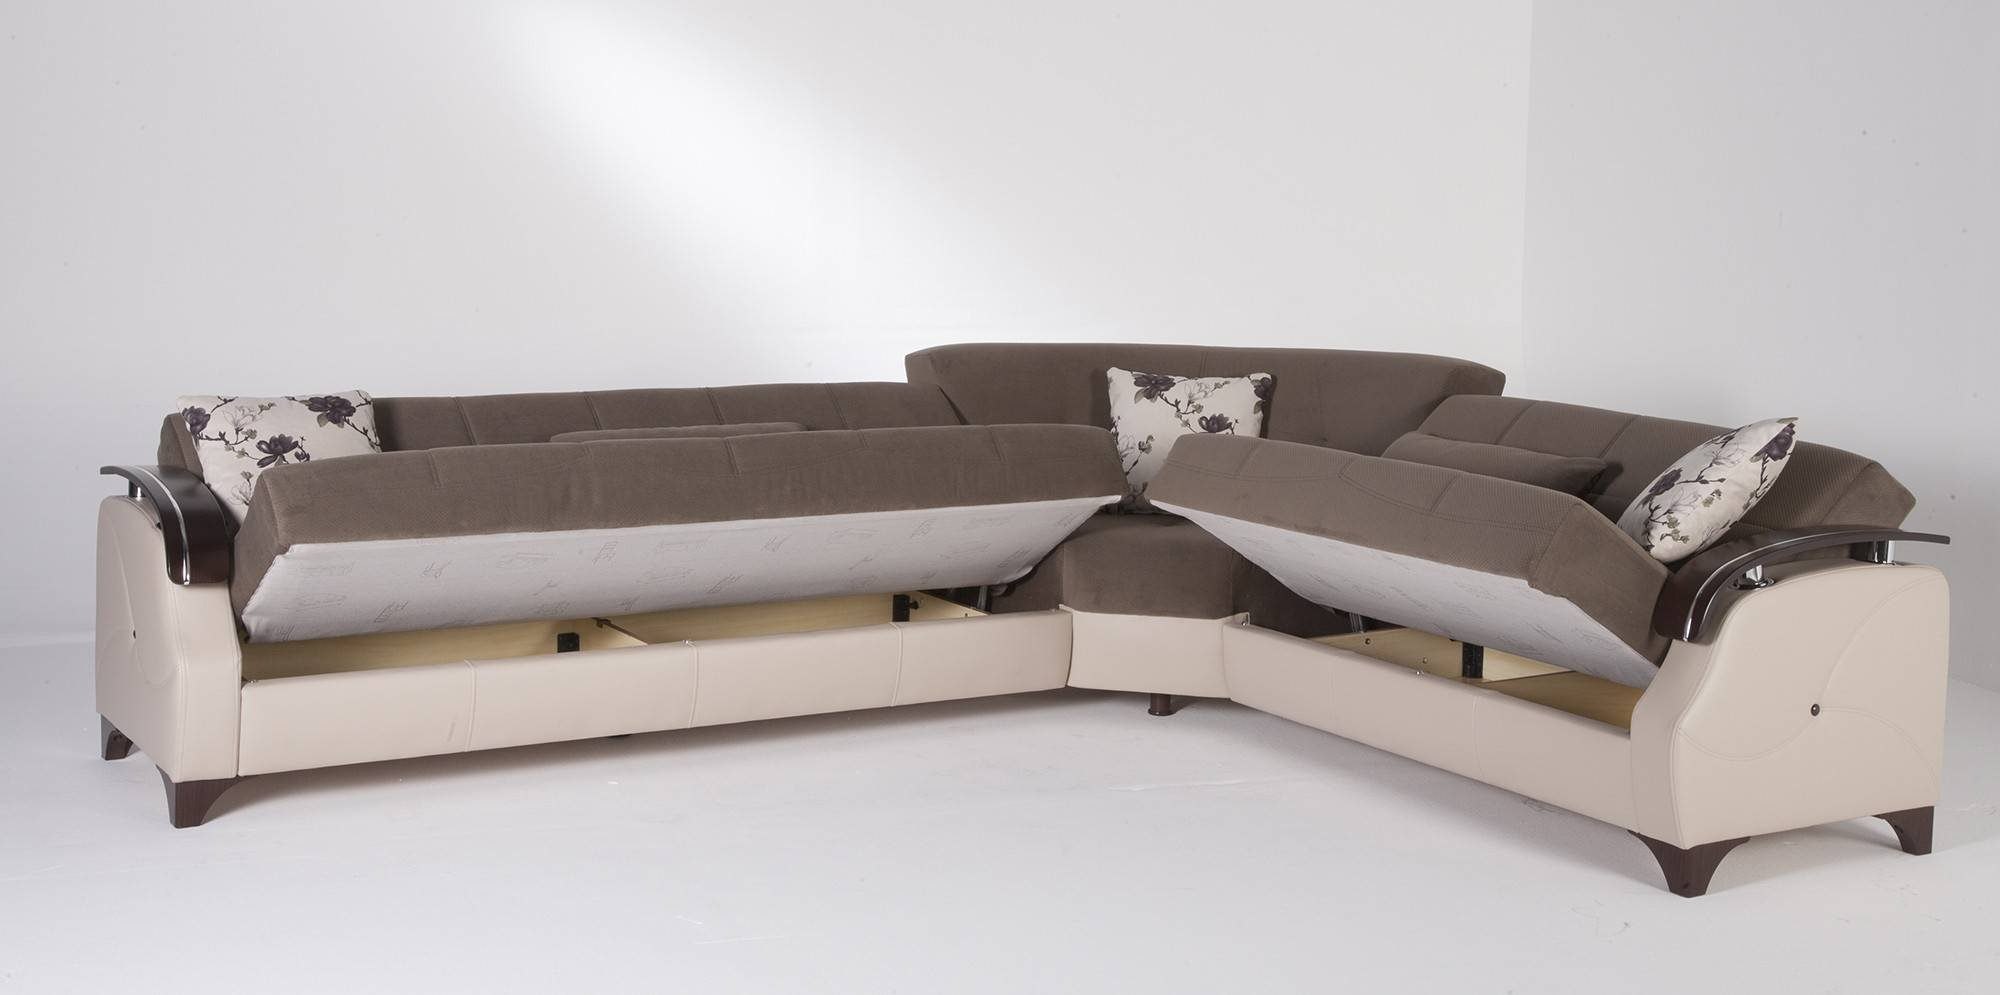 Sleeper Sofas | Keko Furniture Inside Sleeper Sofas (View 12 of 15)